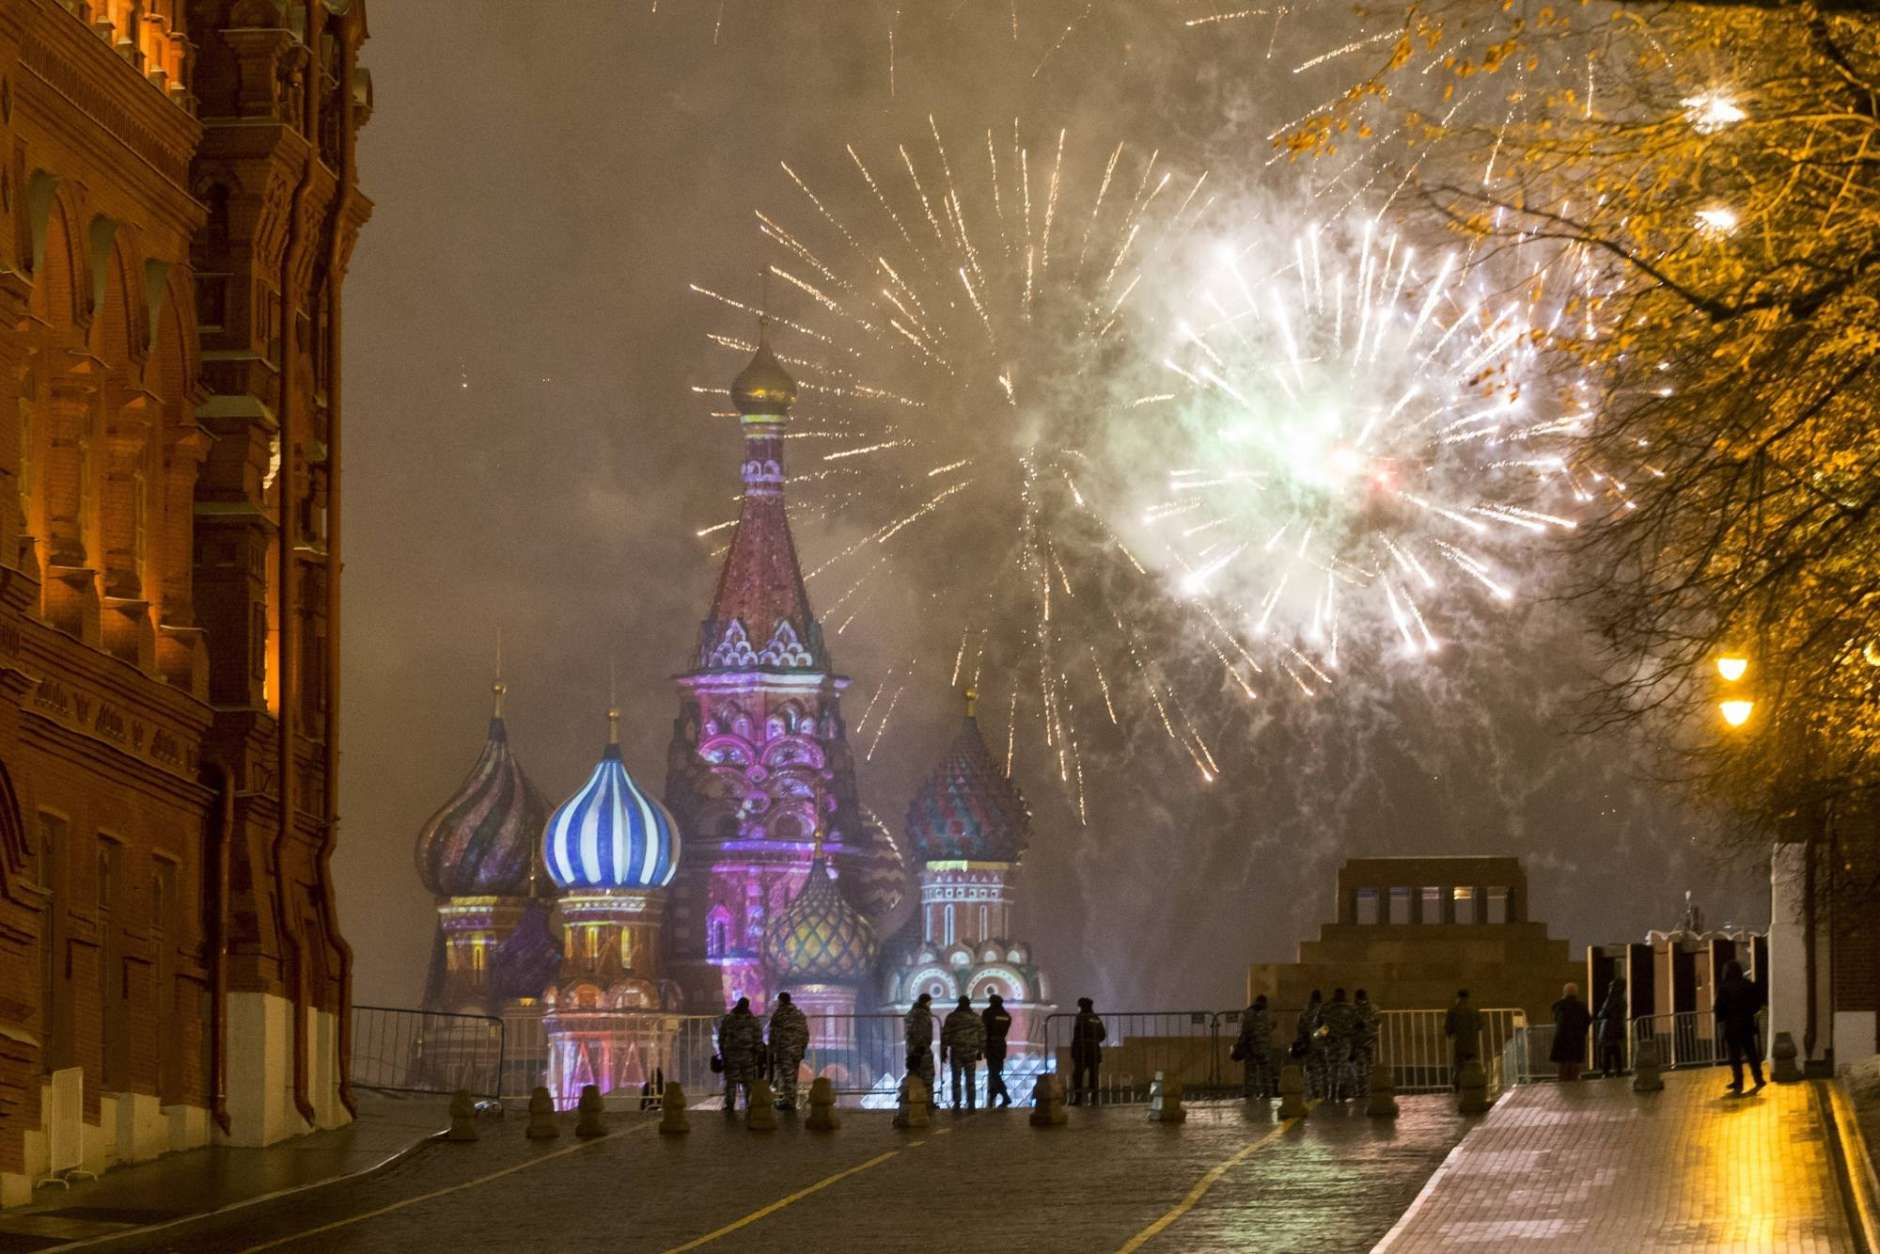 Fireworks explode over the Kremlin in Red Square which was blocked by police during New Year celebrations in Moscow, Russia, Sunday, Jan. 1, 2017. New Year's Eve is Russia's major gift-giving holiday, and big Russian cities were awash in festive lights and decorations. (AP Photo/Alexander Zemlianichenko Jr)